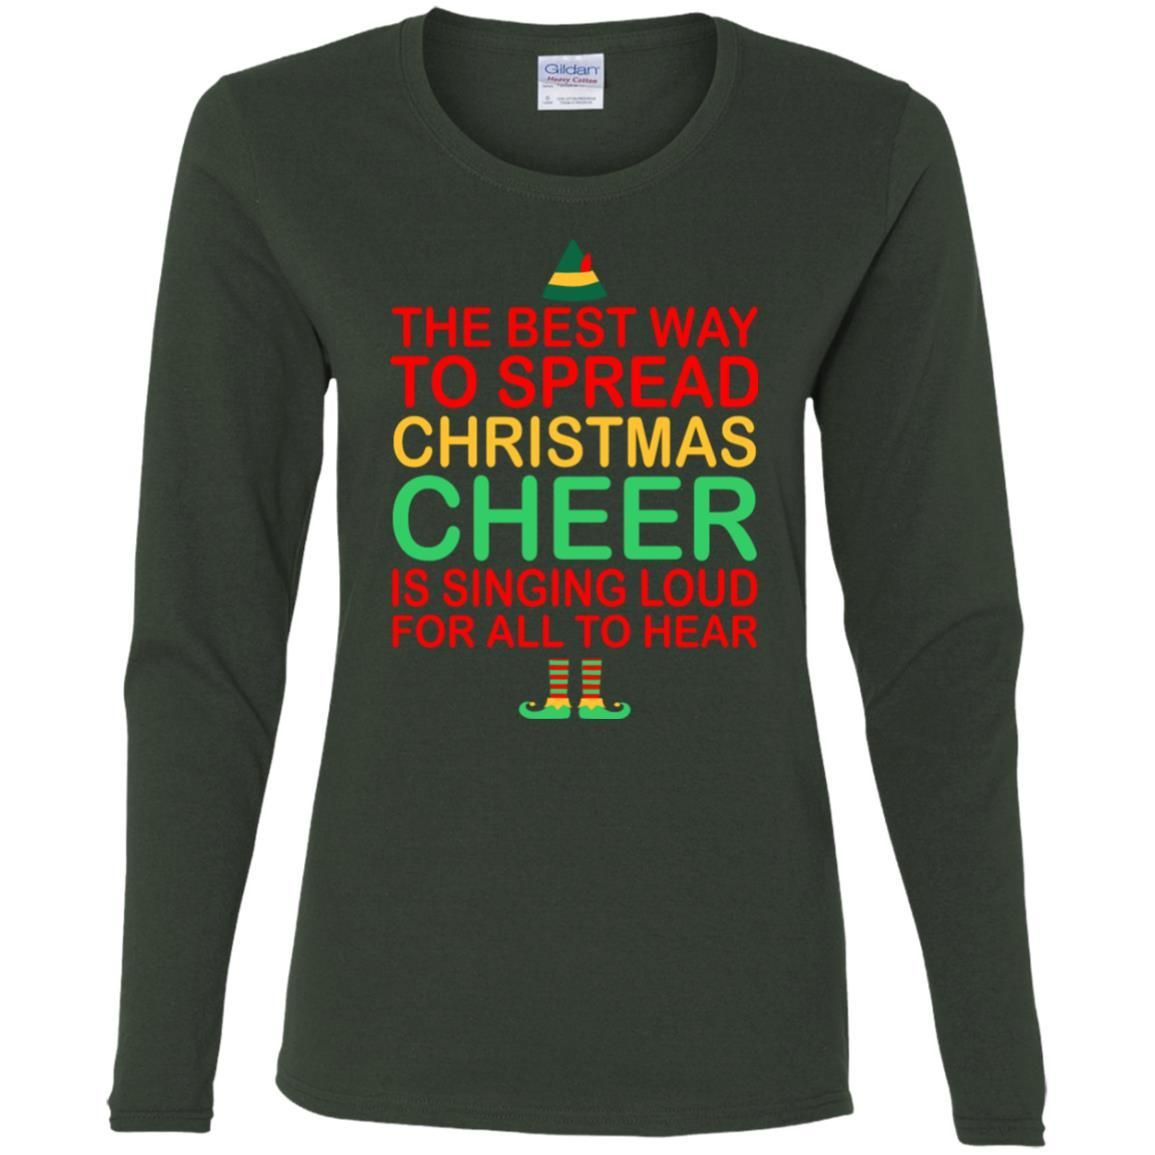 The Best Way To Spread Christmas Cheer Sing Loud T-shirt